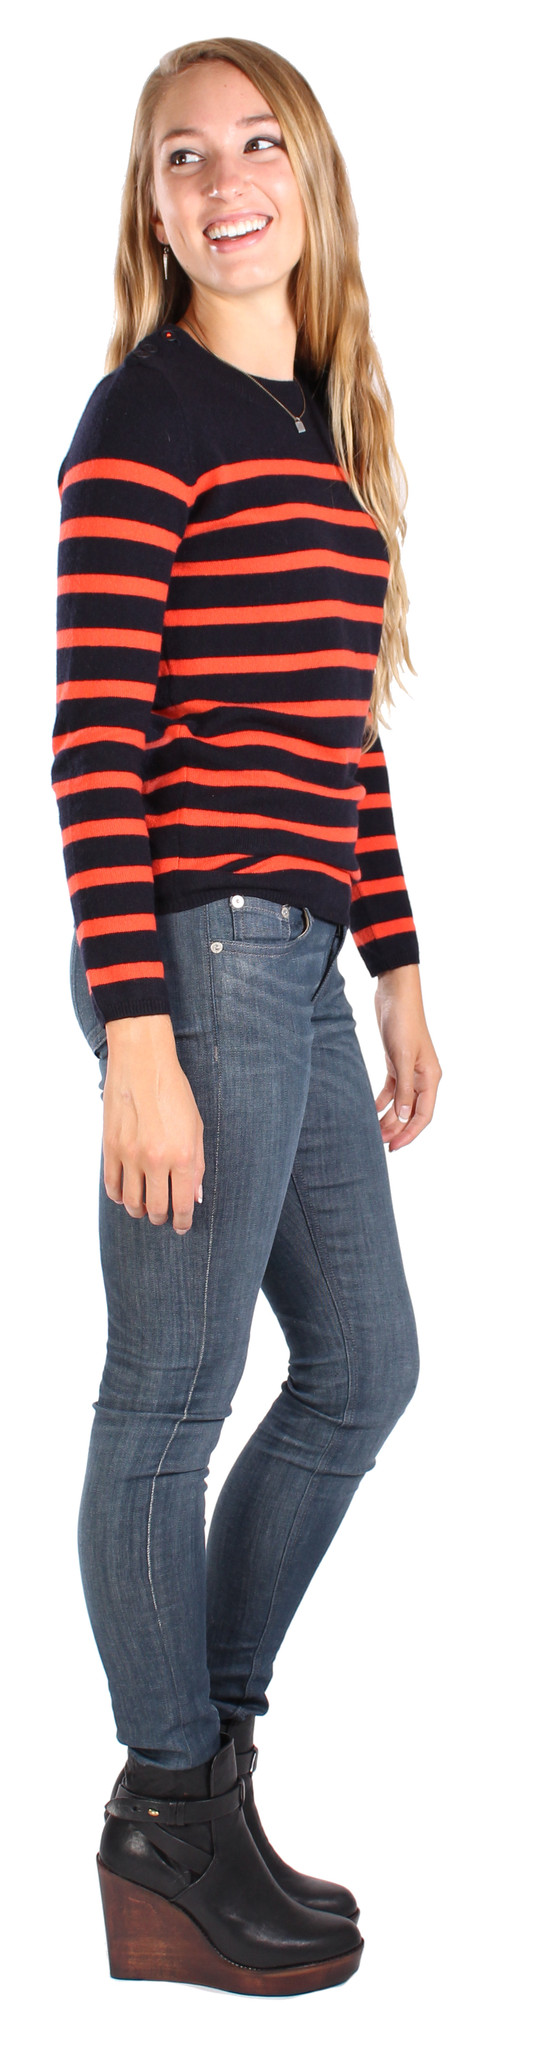 Chinti and Parker Guernsey Stripe Sweater